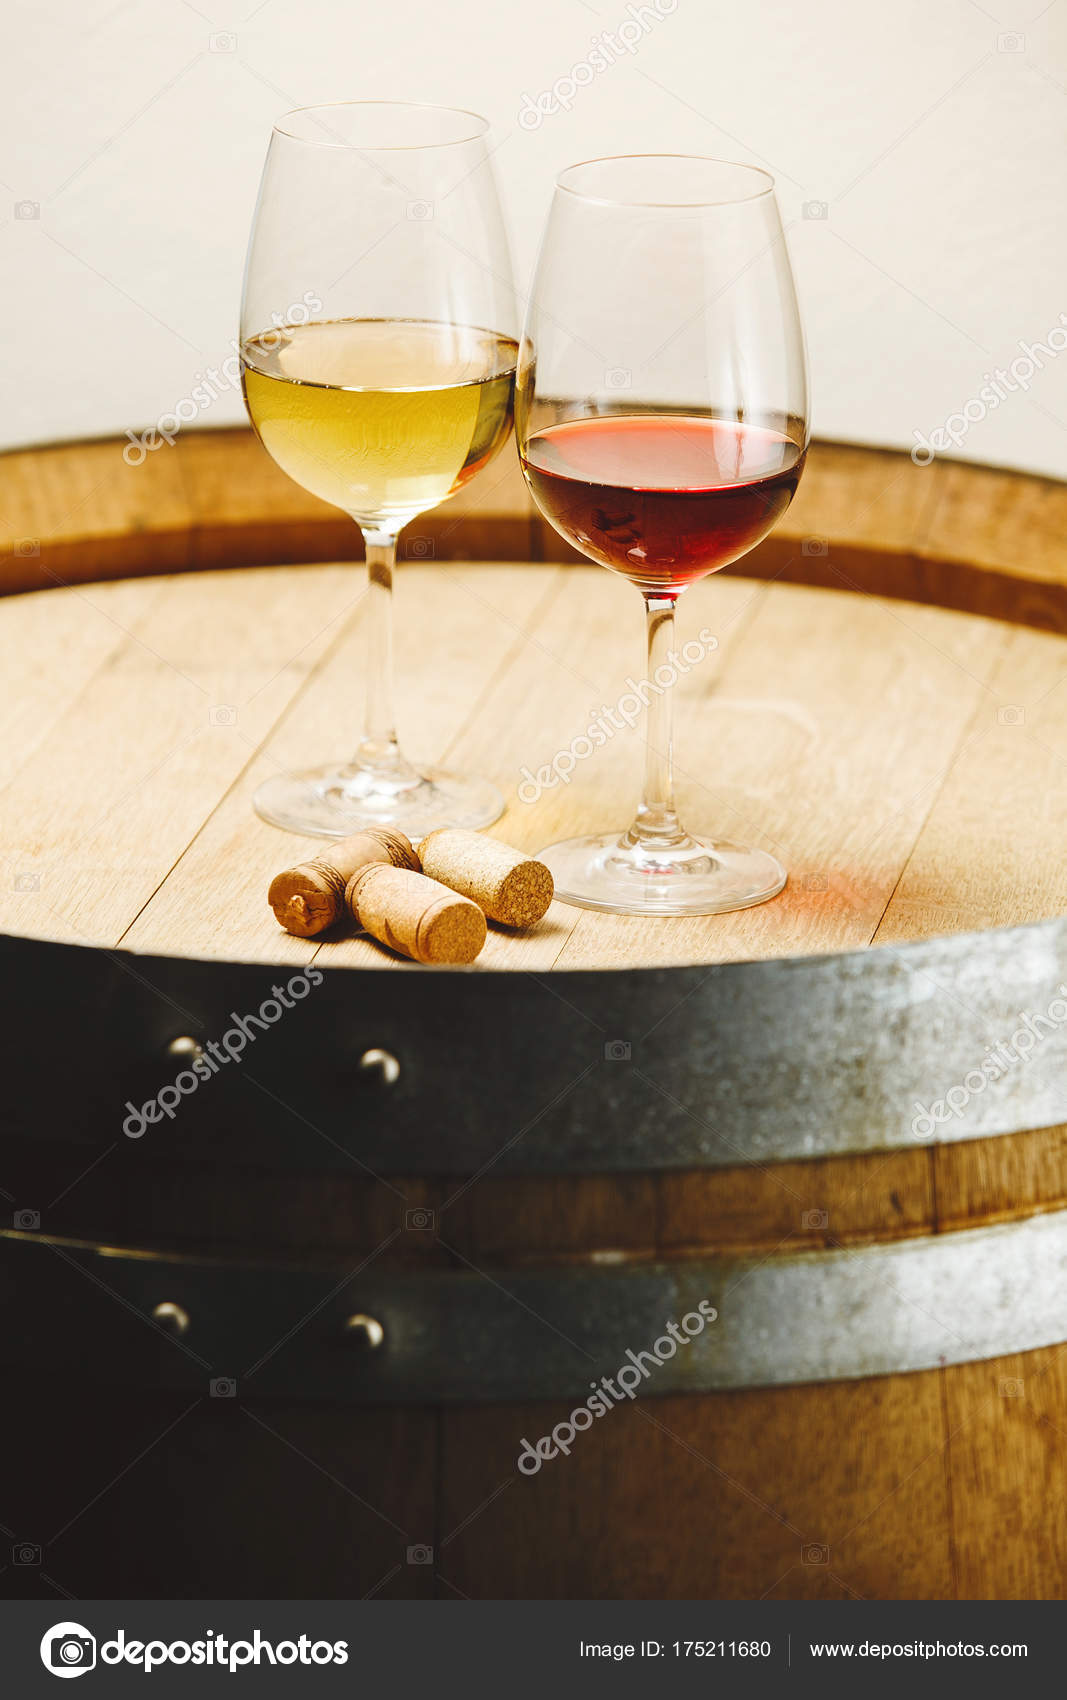 Small Wine Stand Glasses Of White And Red Wine Stand On Wooden Barrel Stock Photo